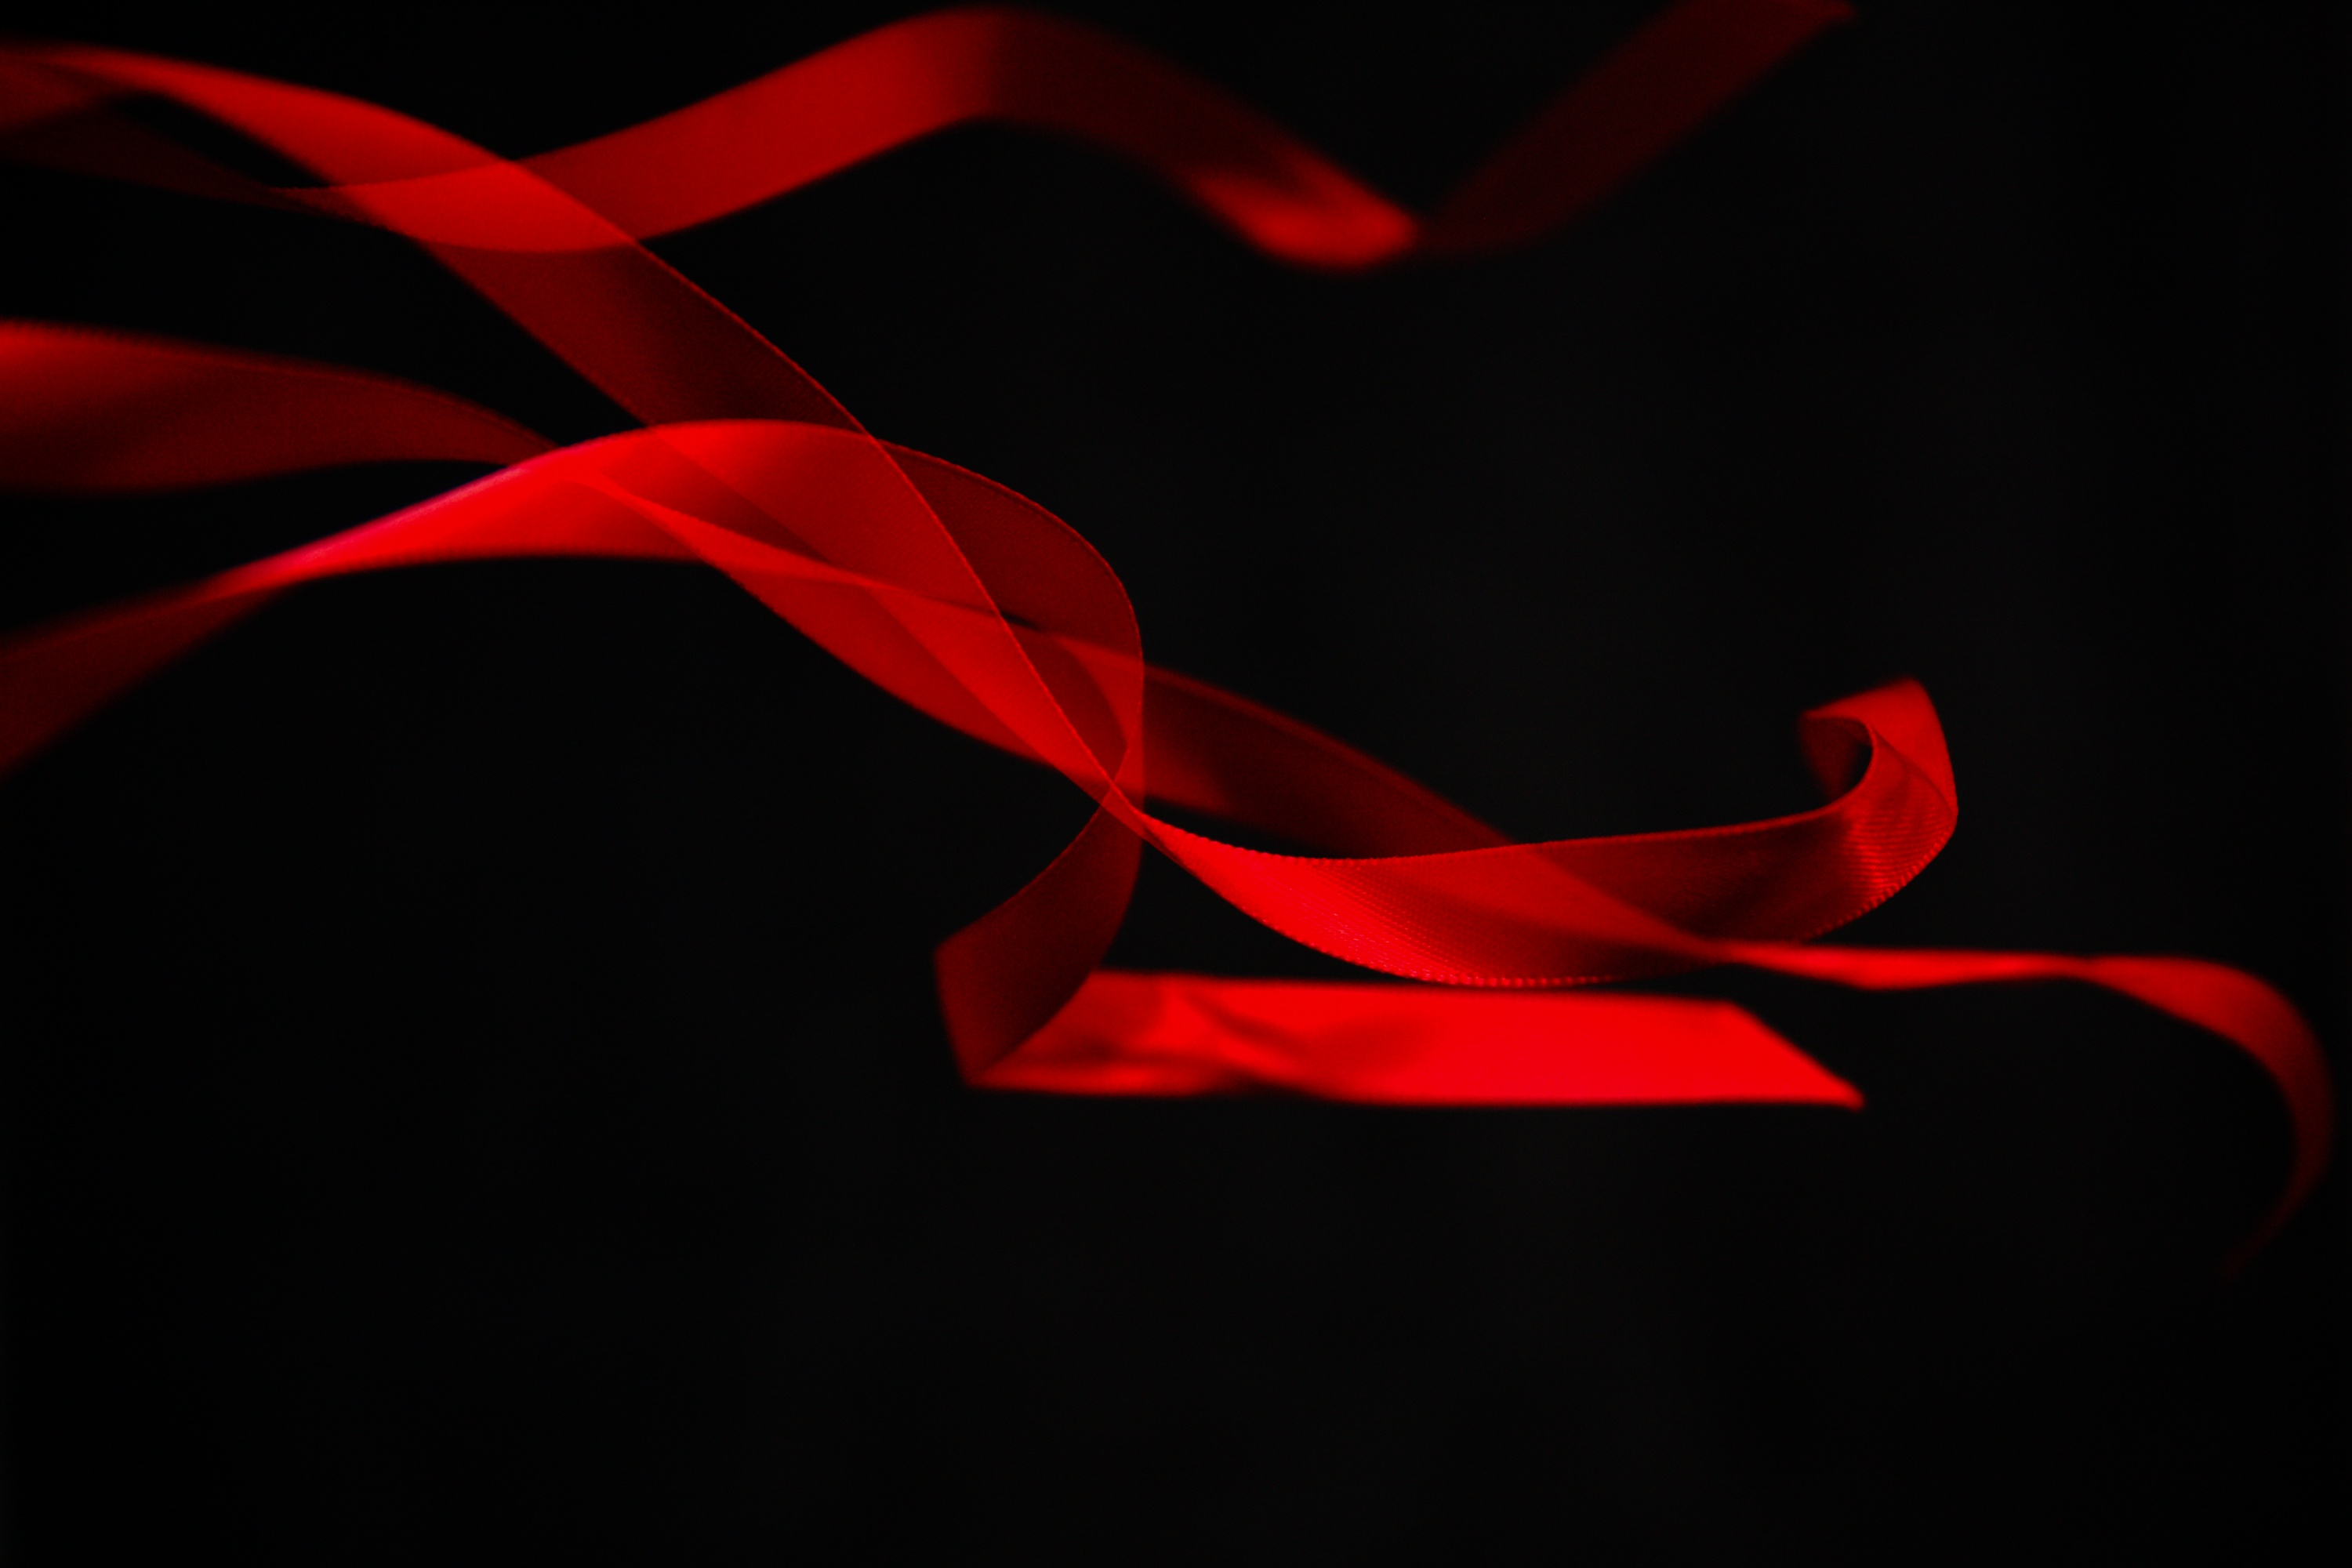 Black And Red Background Images